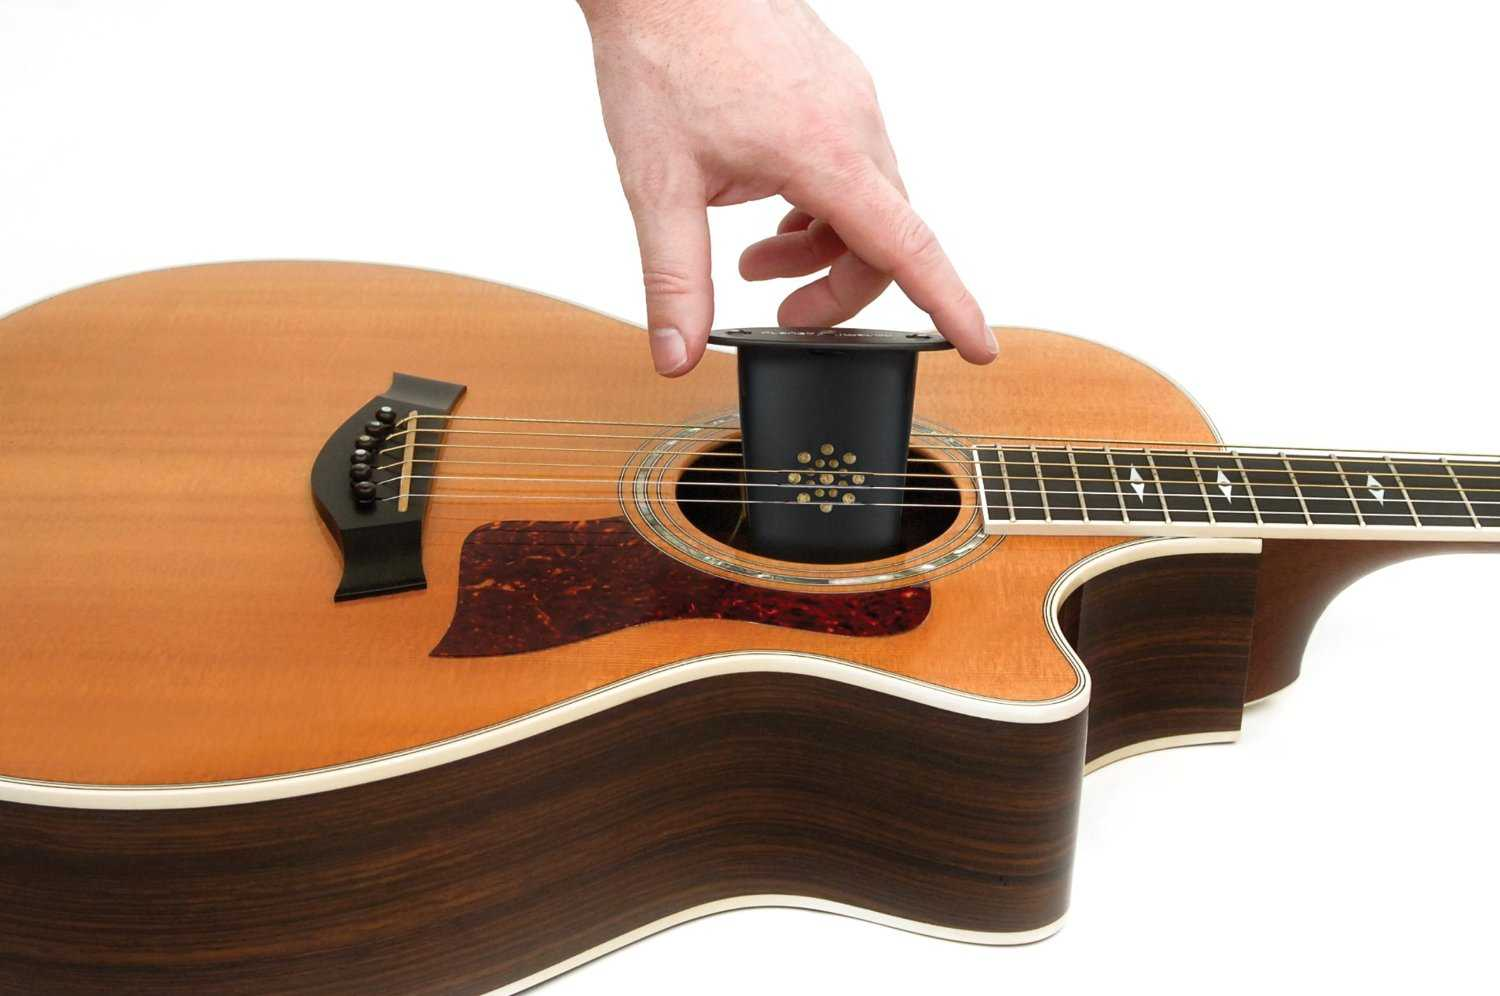 D'Addario One-Way Acoustic Guitar Humidifier